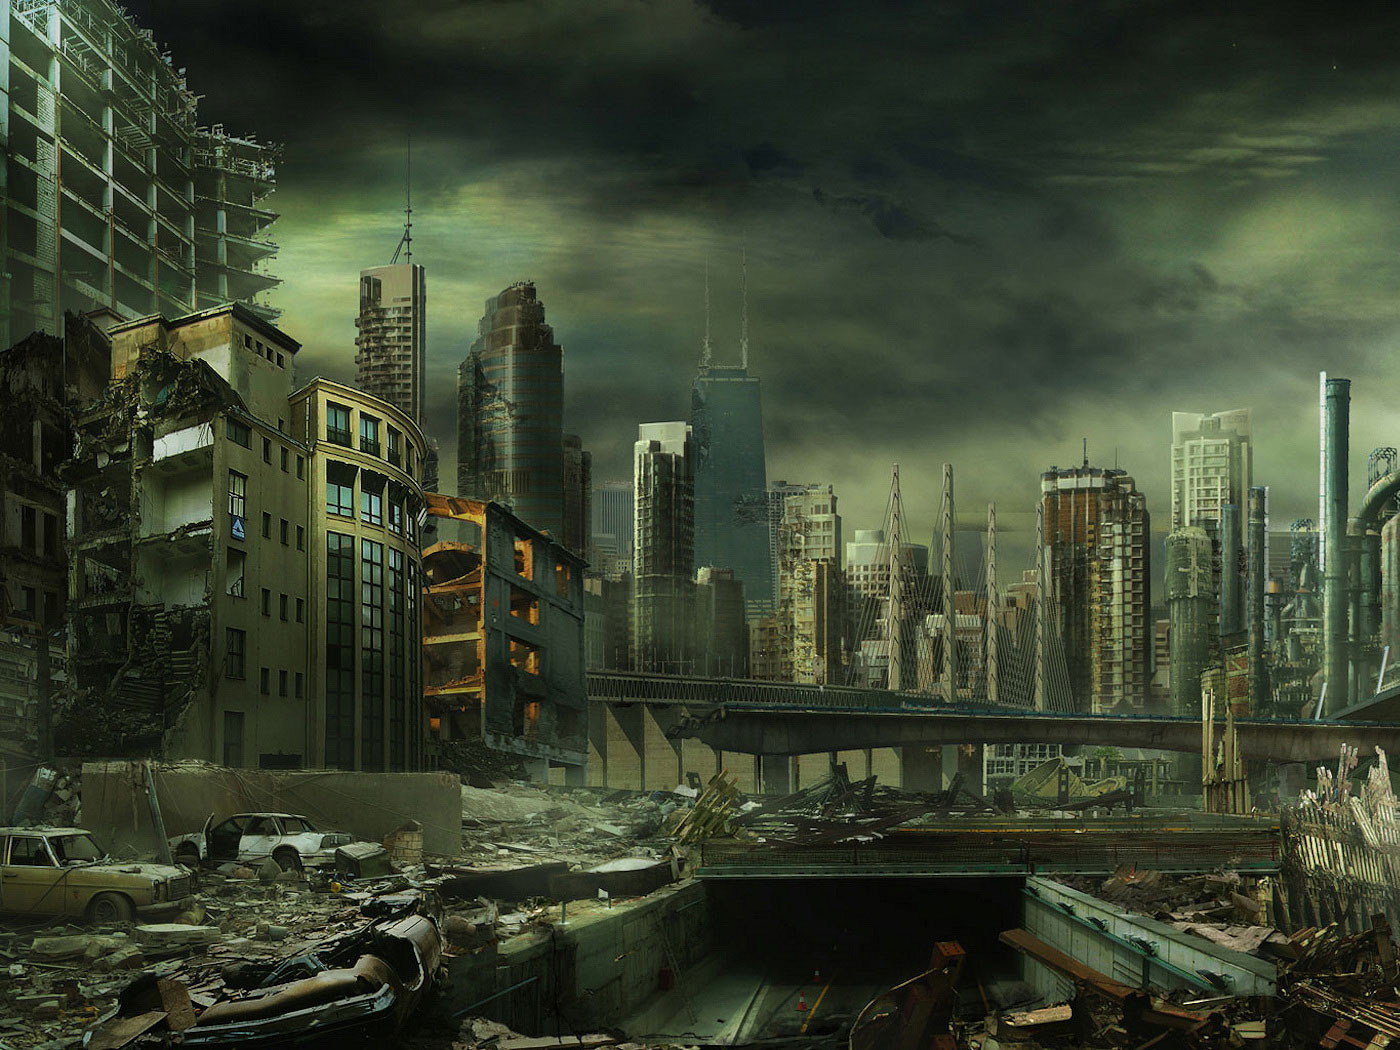 Doomsday Destruction Images Apocalypse HD Wallpaper And Background Photos